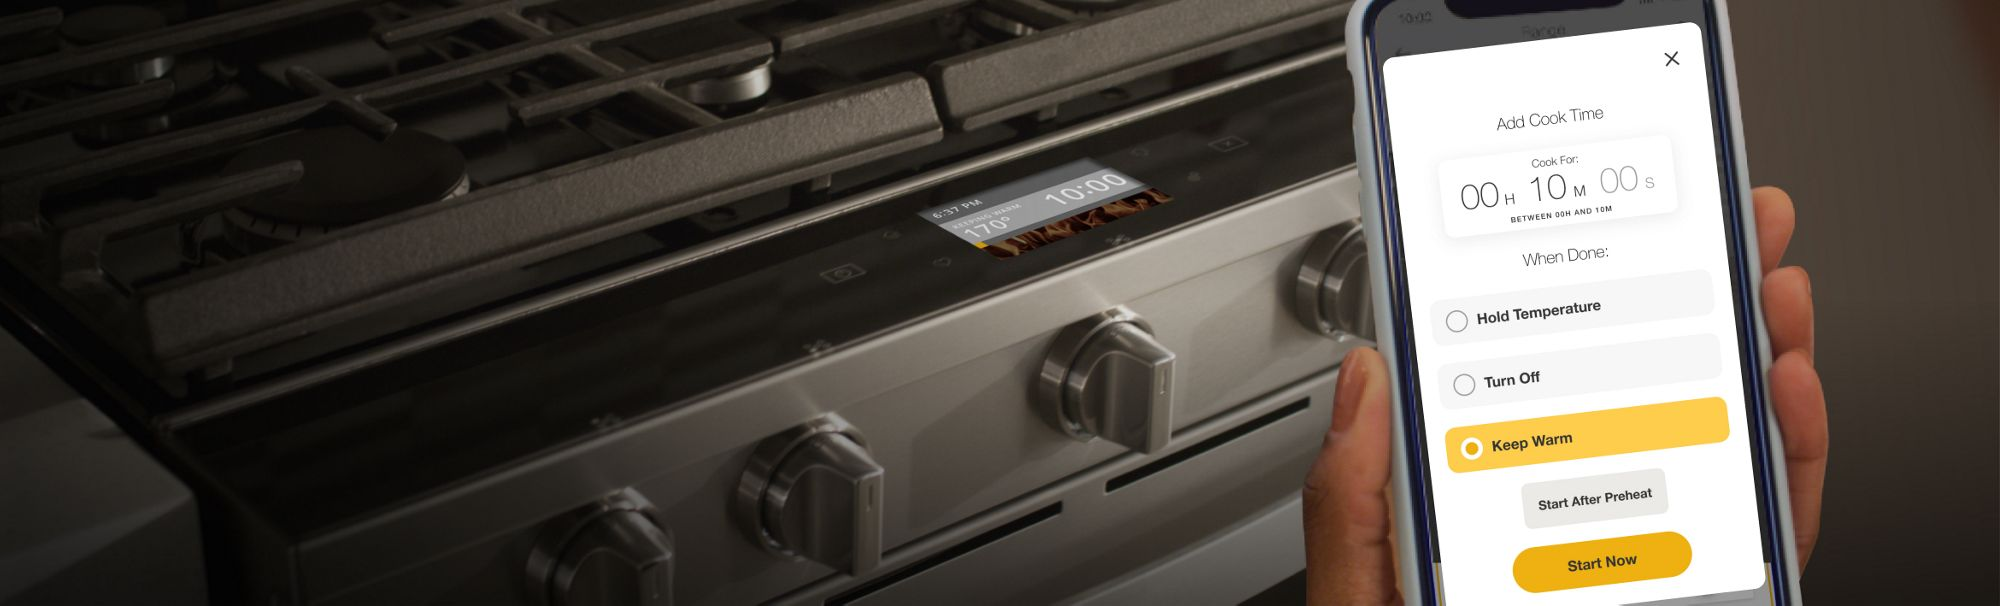 Setting oven to Keep Warm in the Whirlpool® app